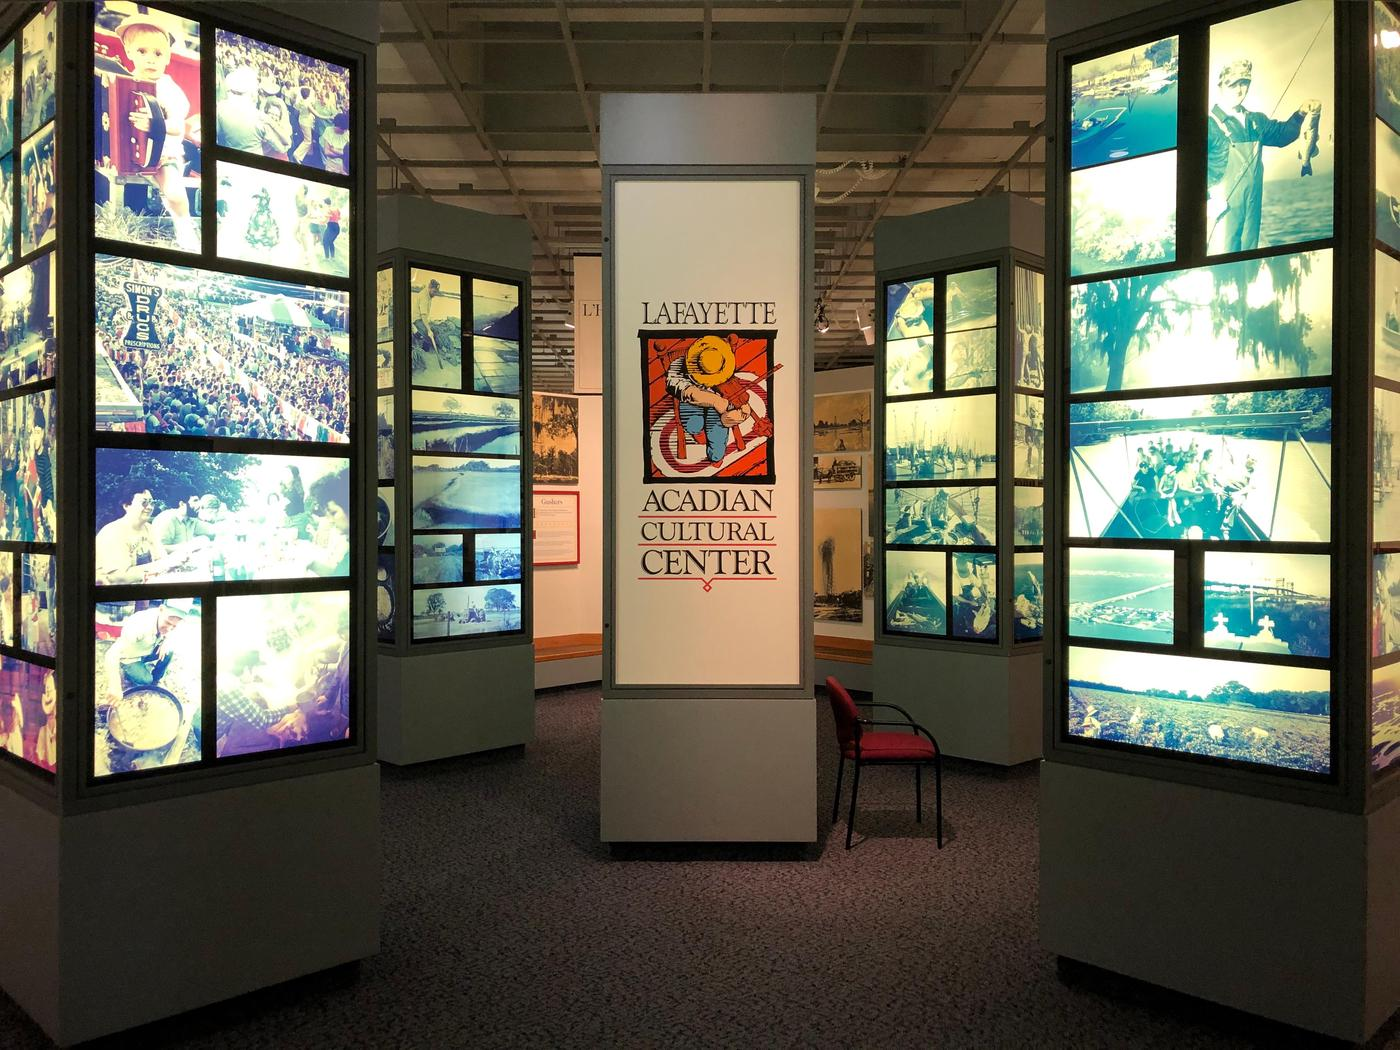 ACC MuseumThe museum as exhibits highlighting different aspects of Cajun culture